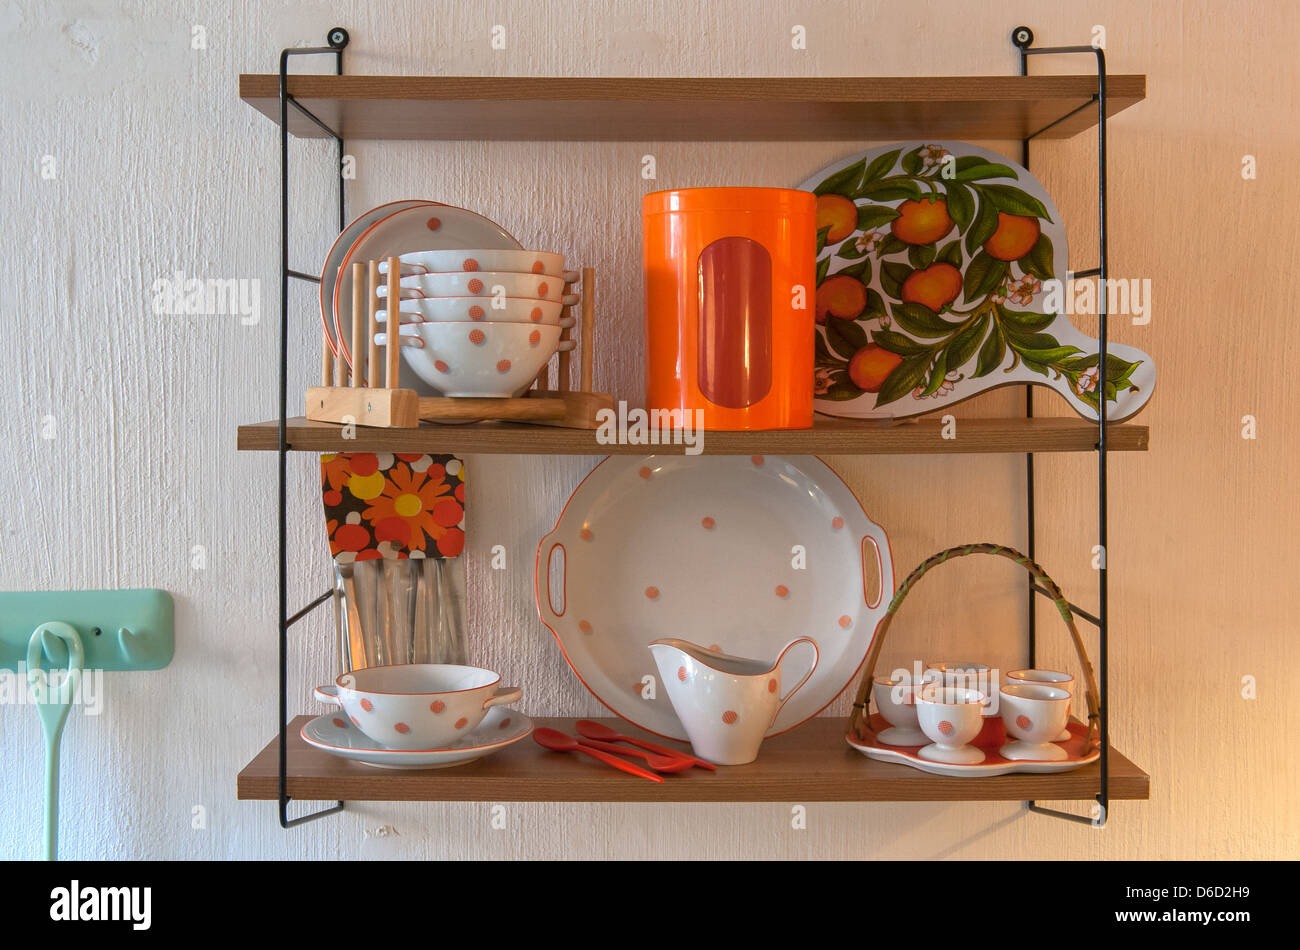 Berlin, Germany, Retro Furnishings in the style of the 50s and 60s - Stock Image